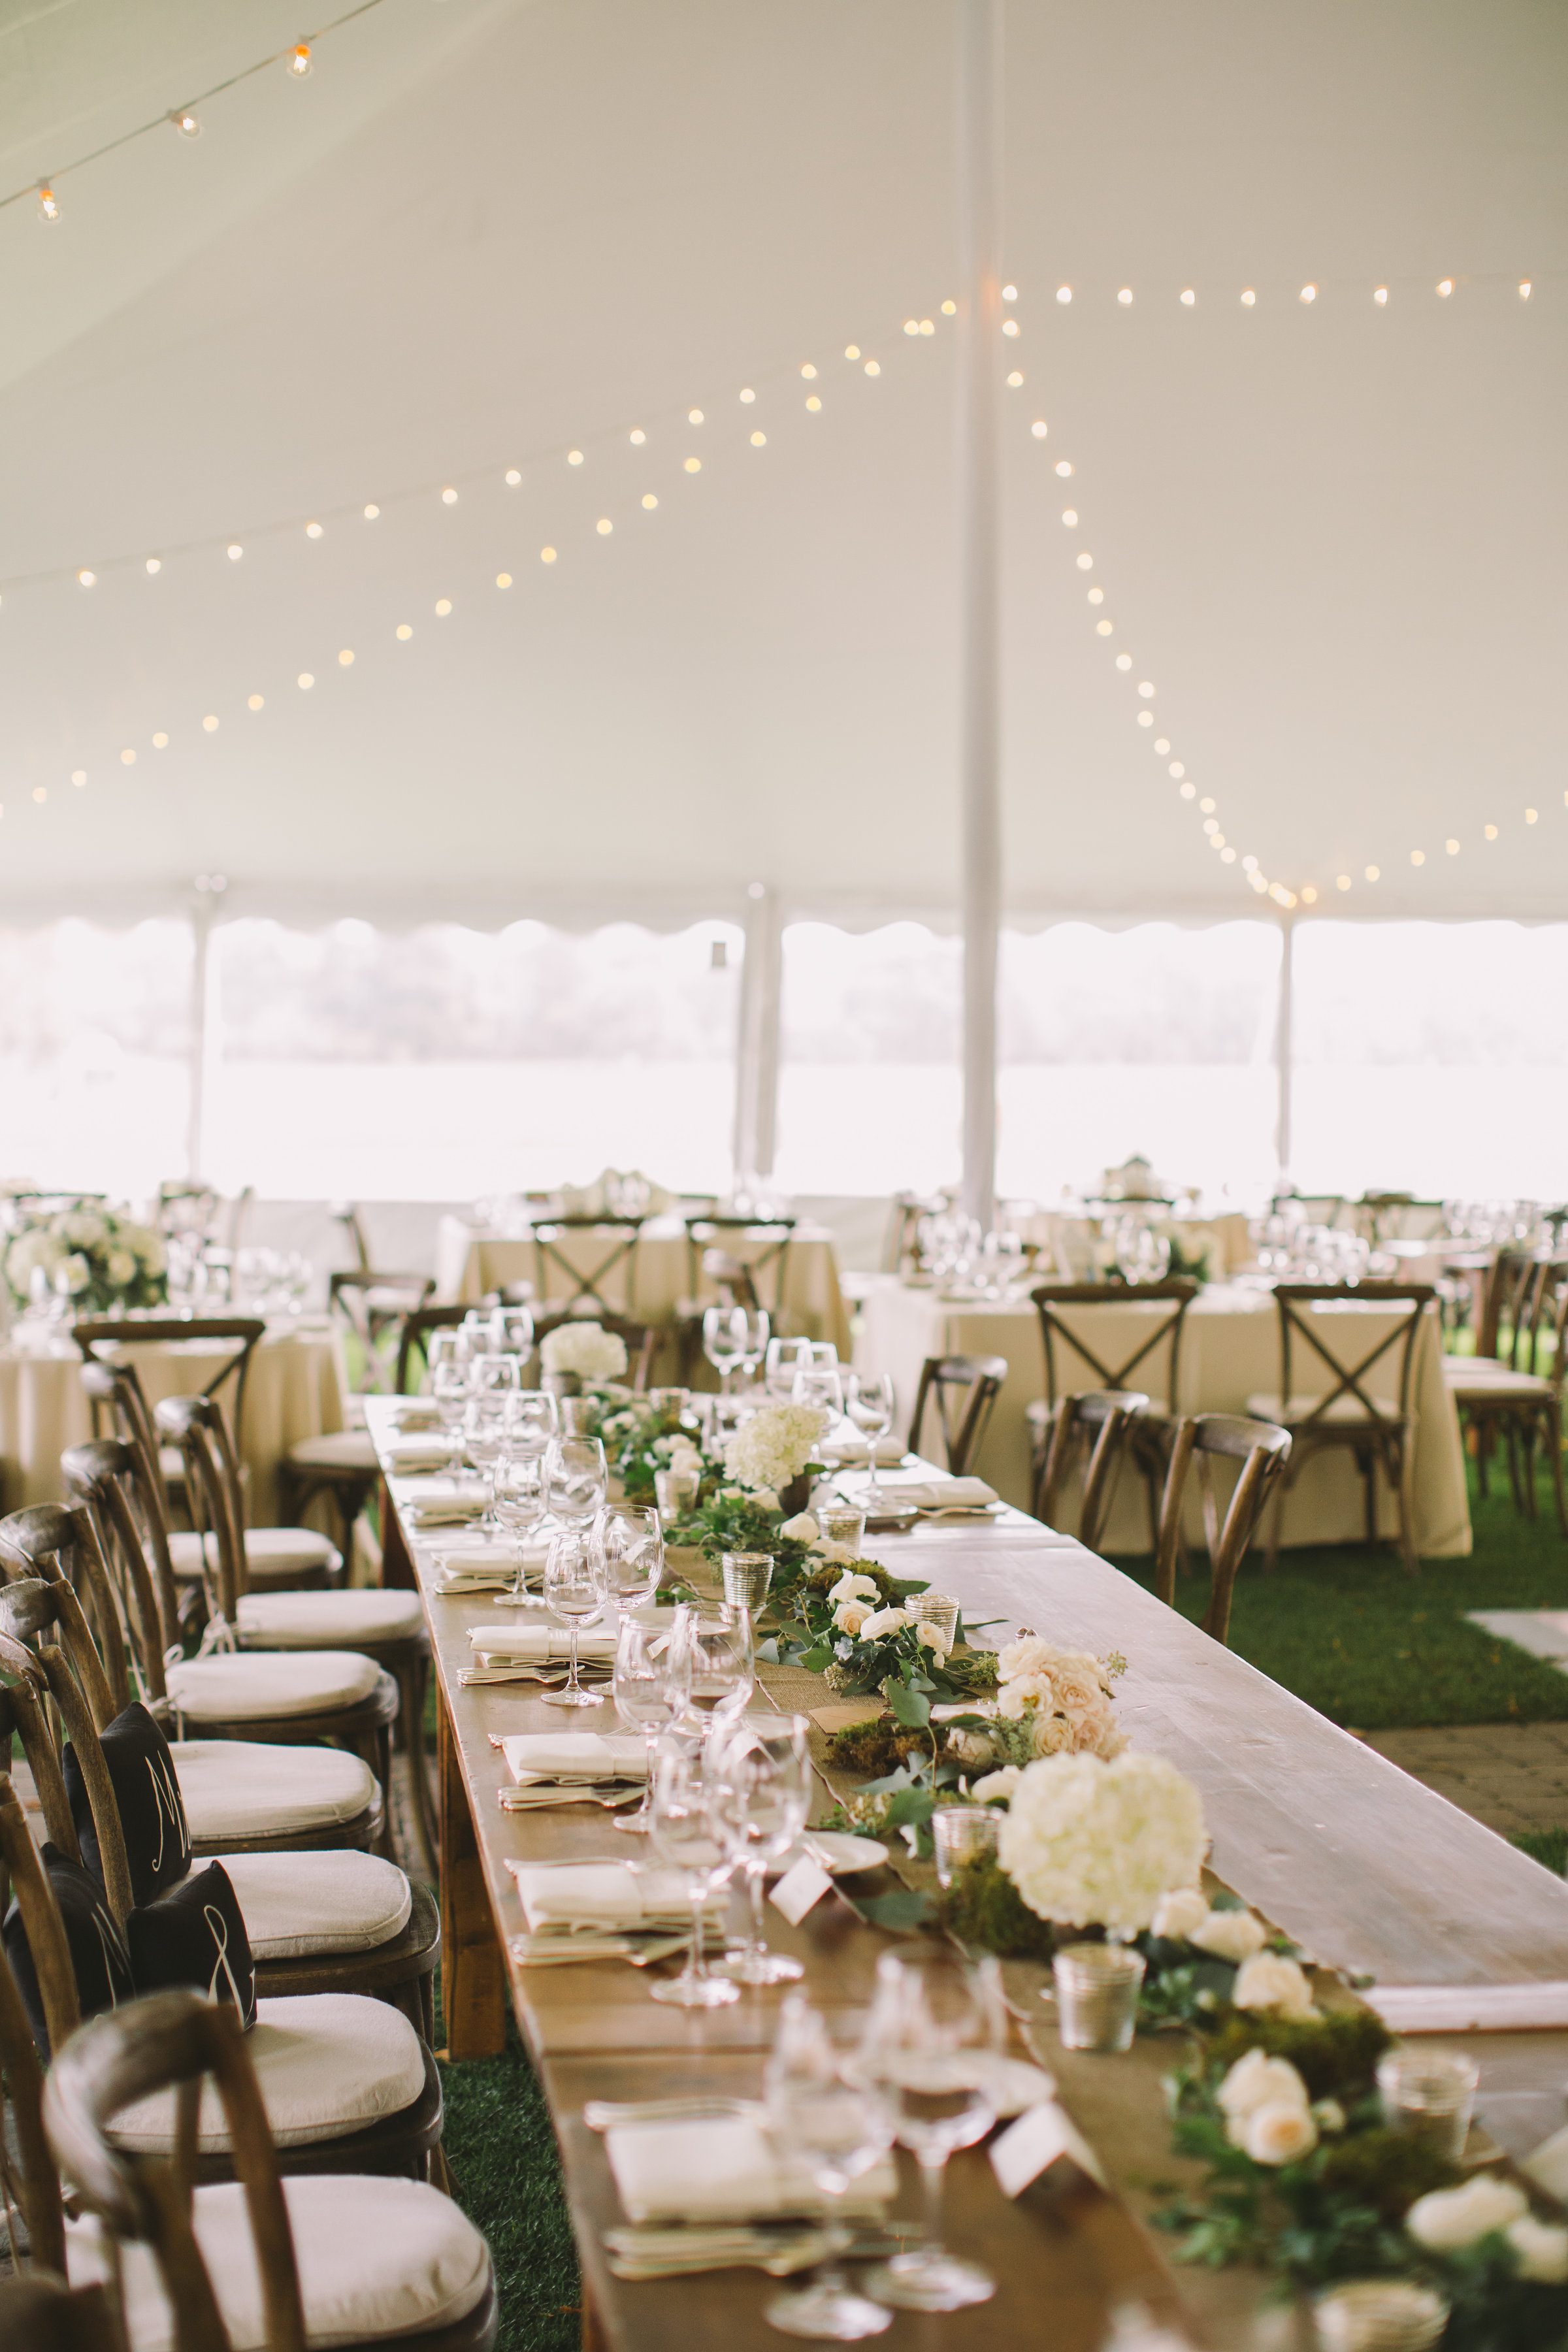 cover with chair worthy wedding perfect home rentals luxury ideas design cheap decor on fabulous in